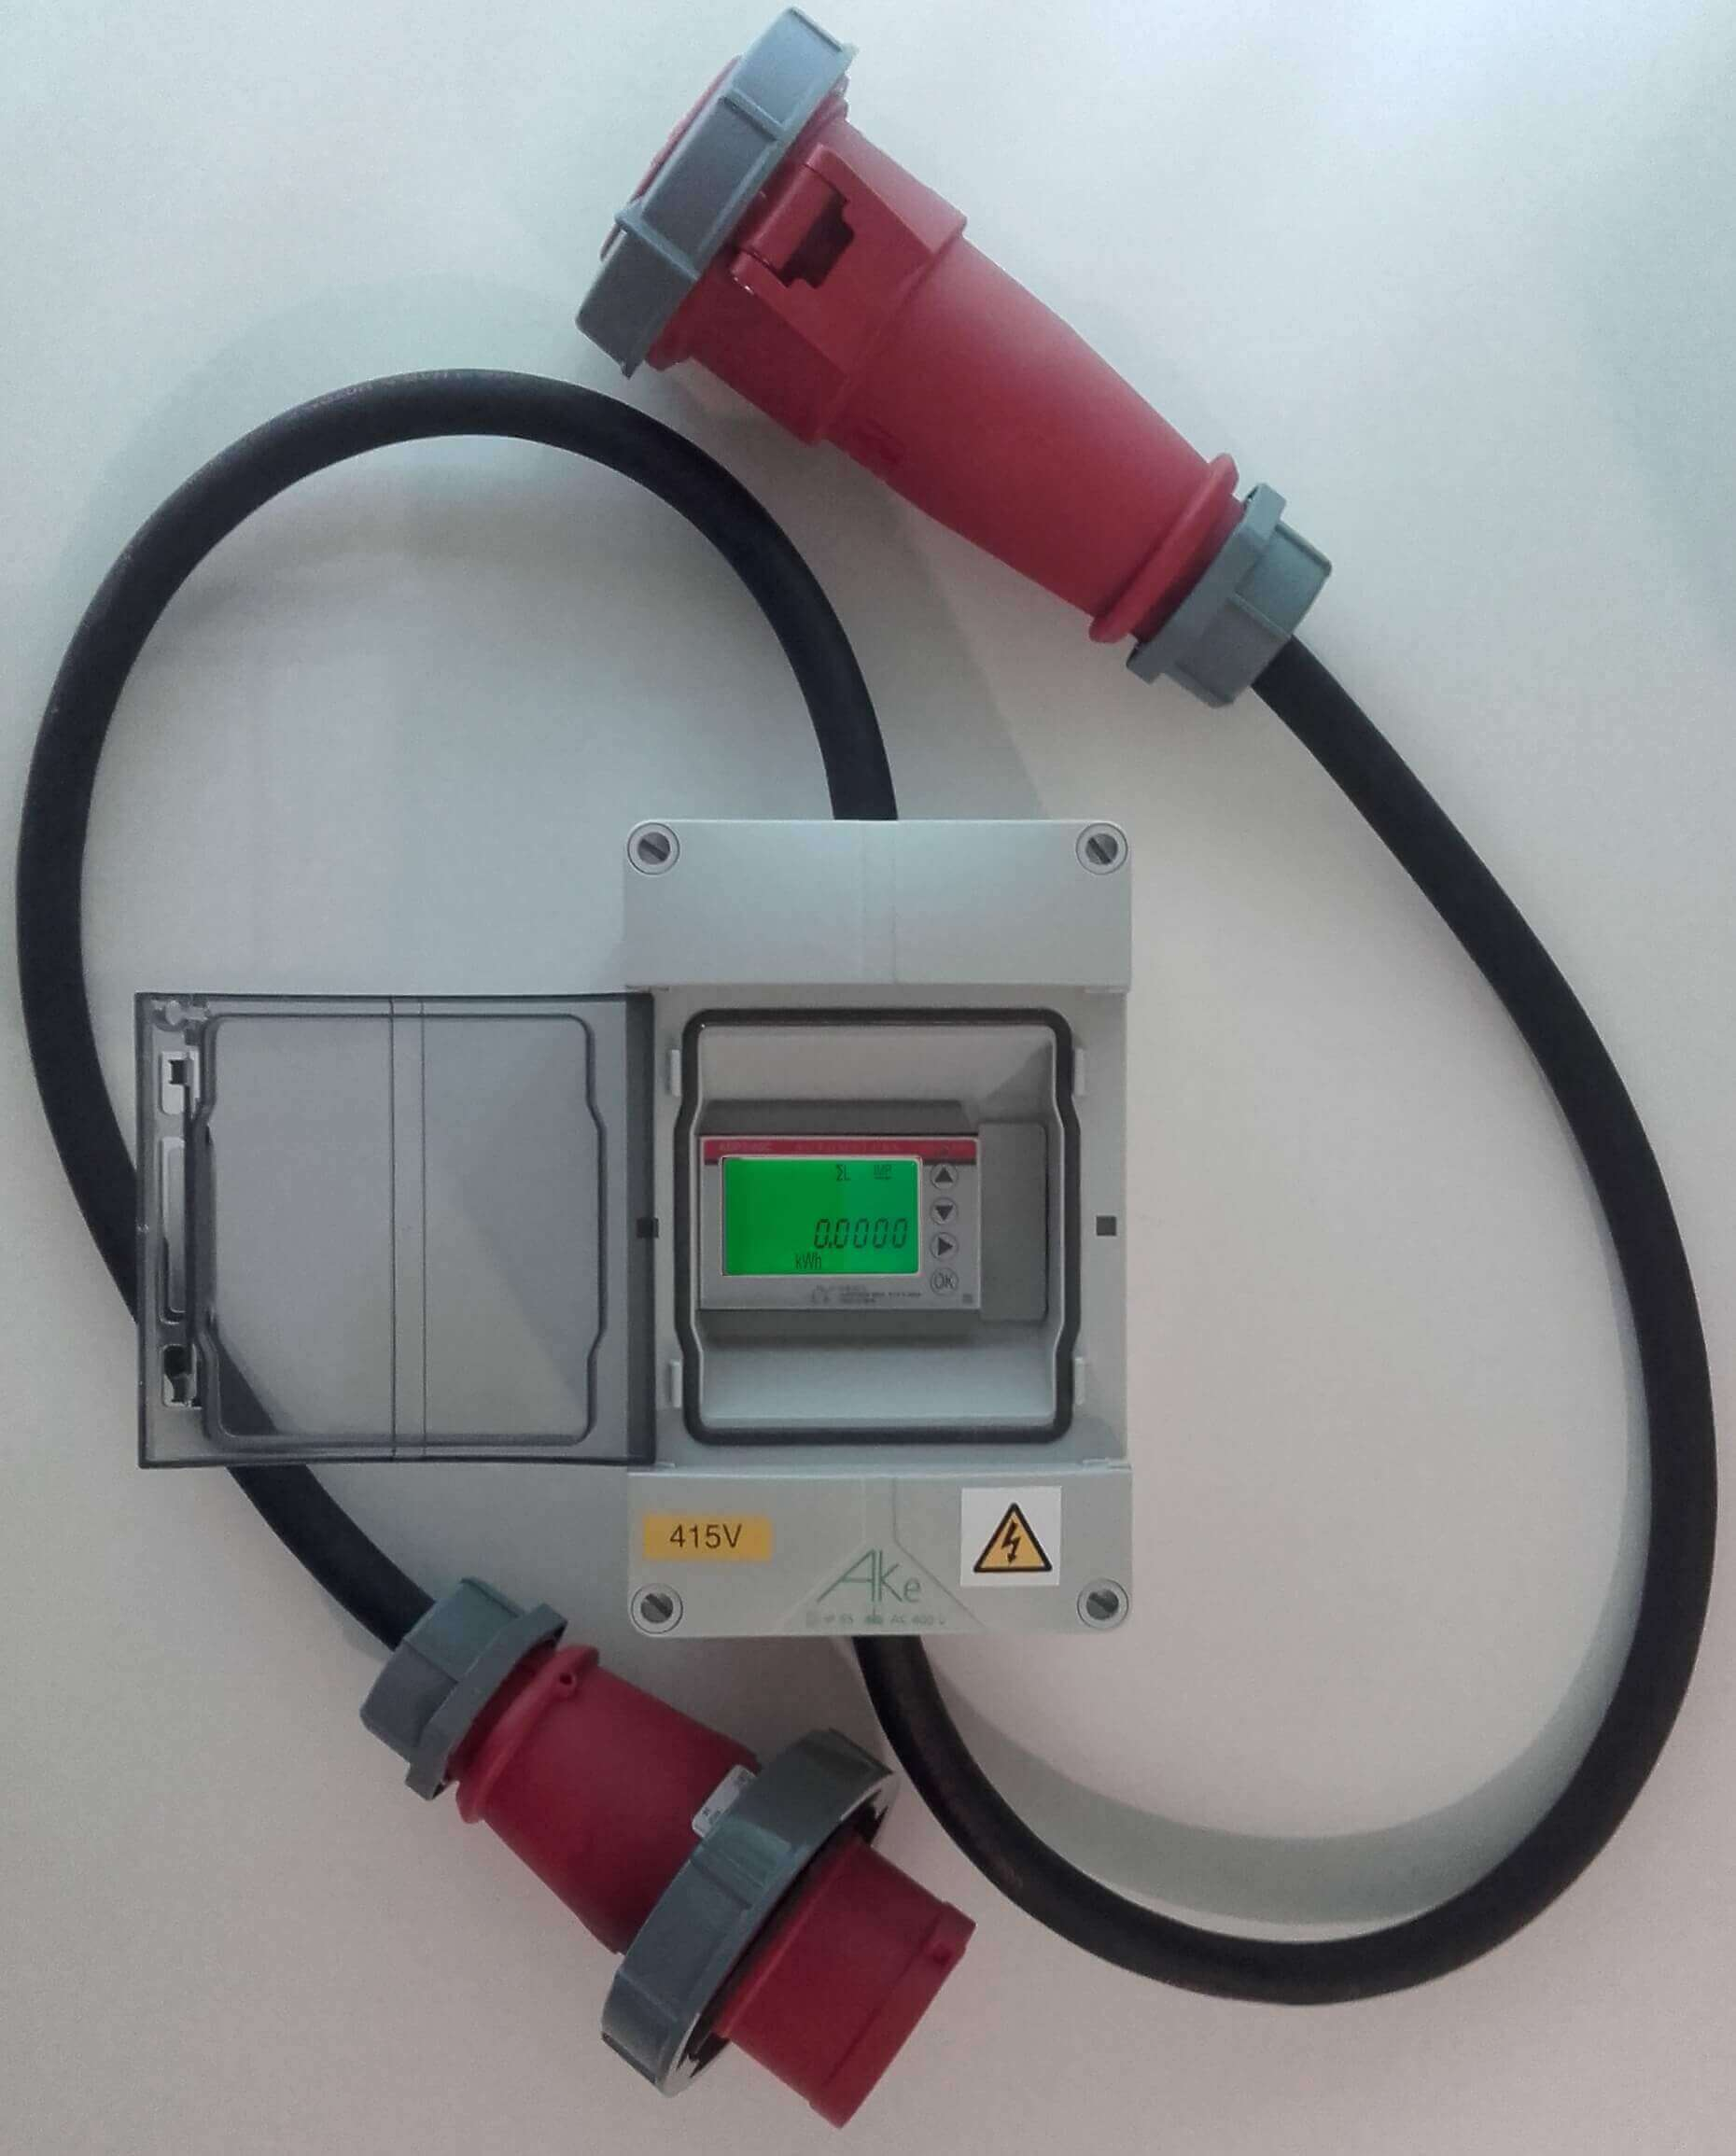 hight resolution of in line 3 phase electricity meter